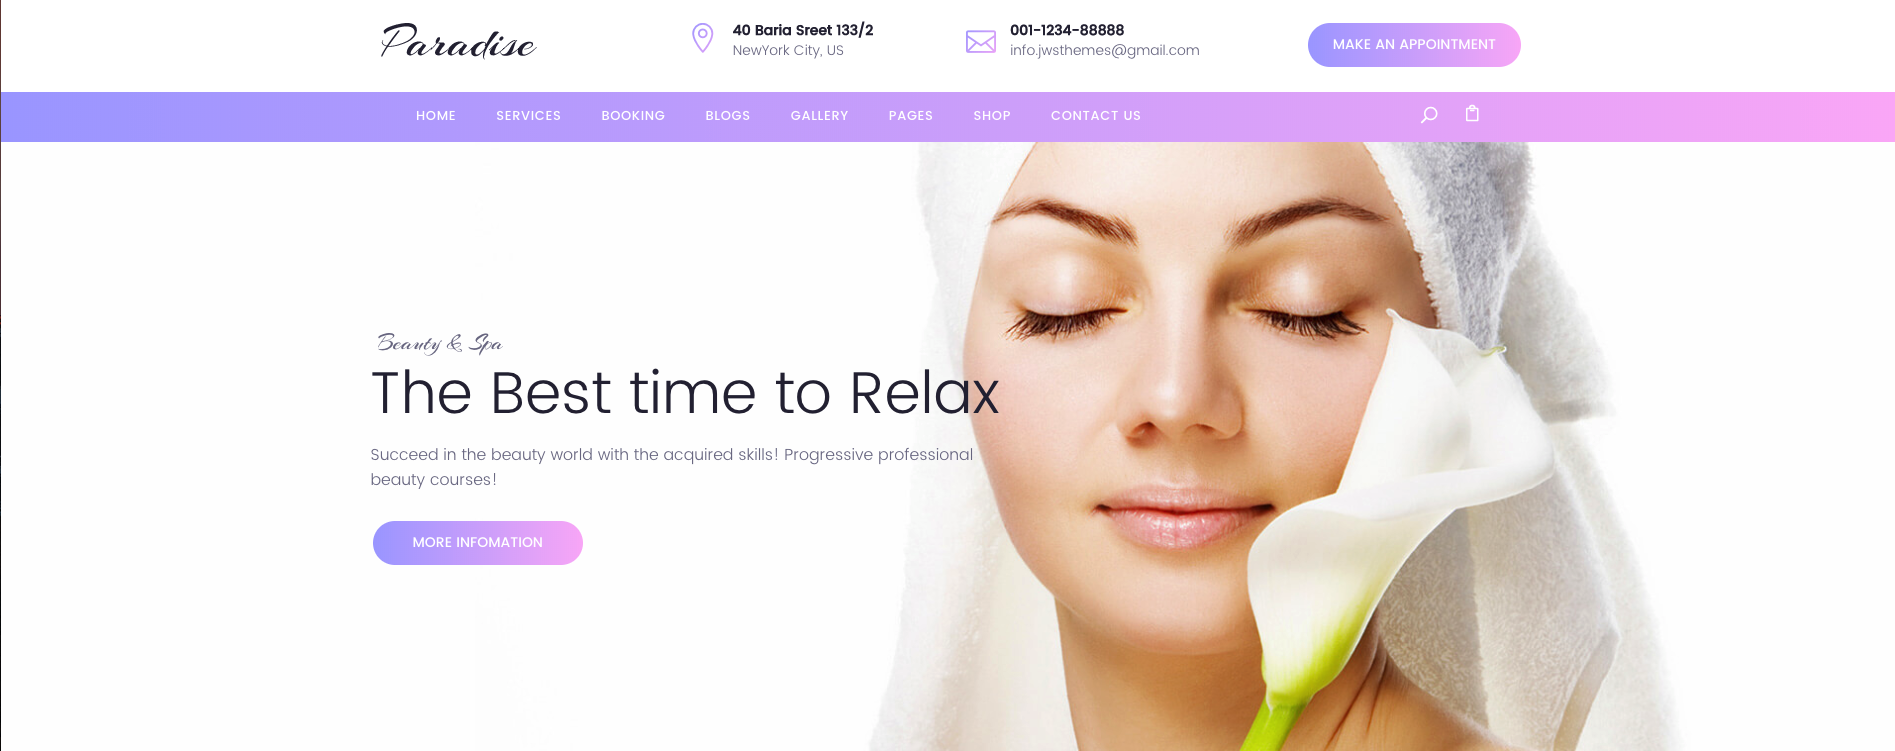 PARADISE – MULTIPURPOSE BEAUTY & SPA, HAIRCUT, NAIL, TATTOO WORDPRESS THEME